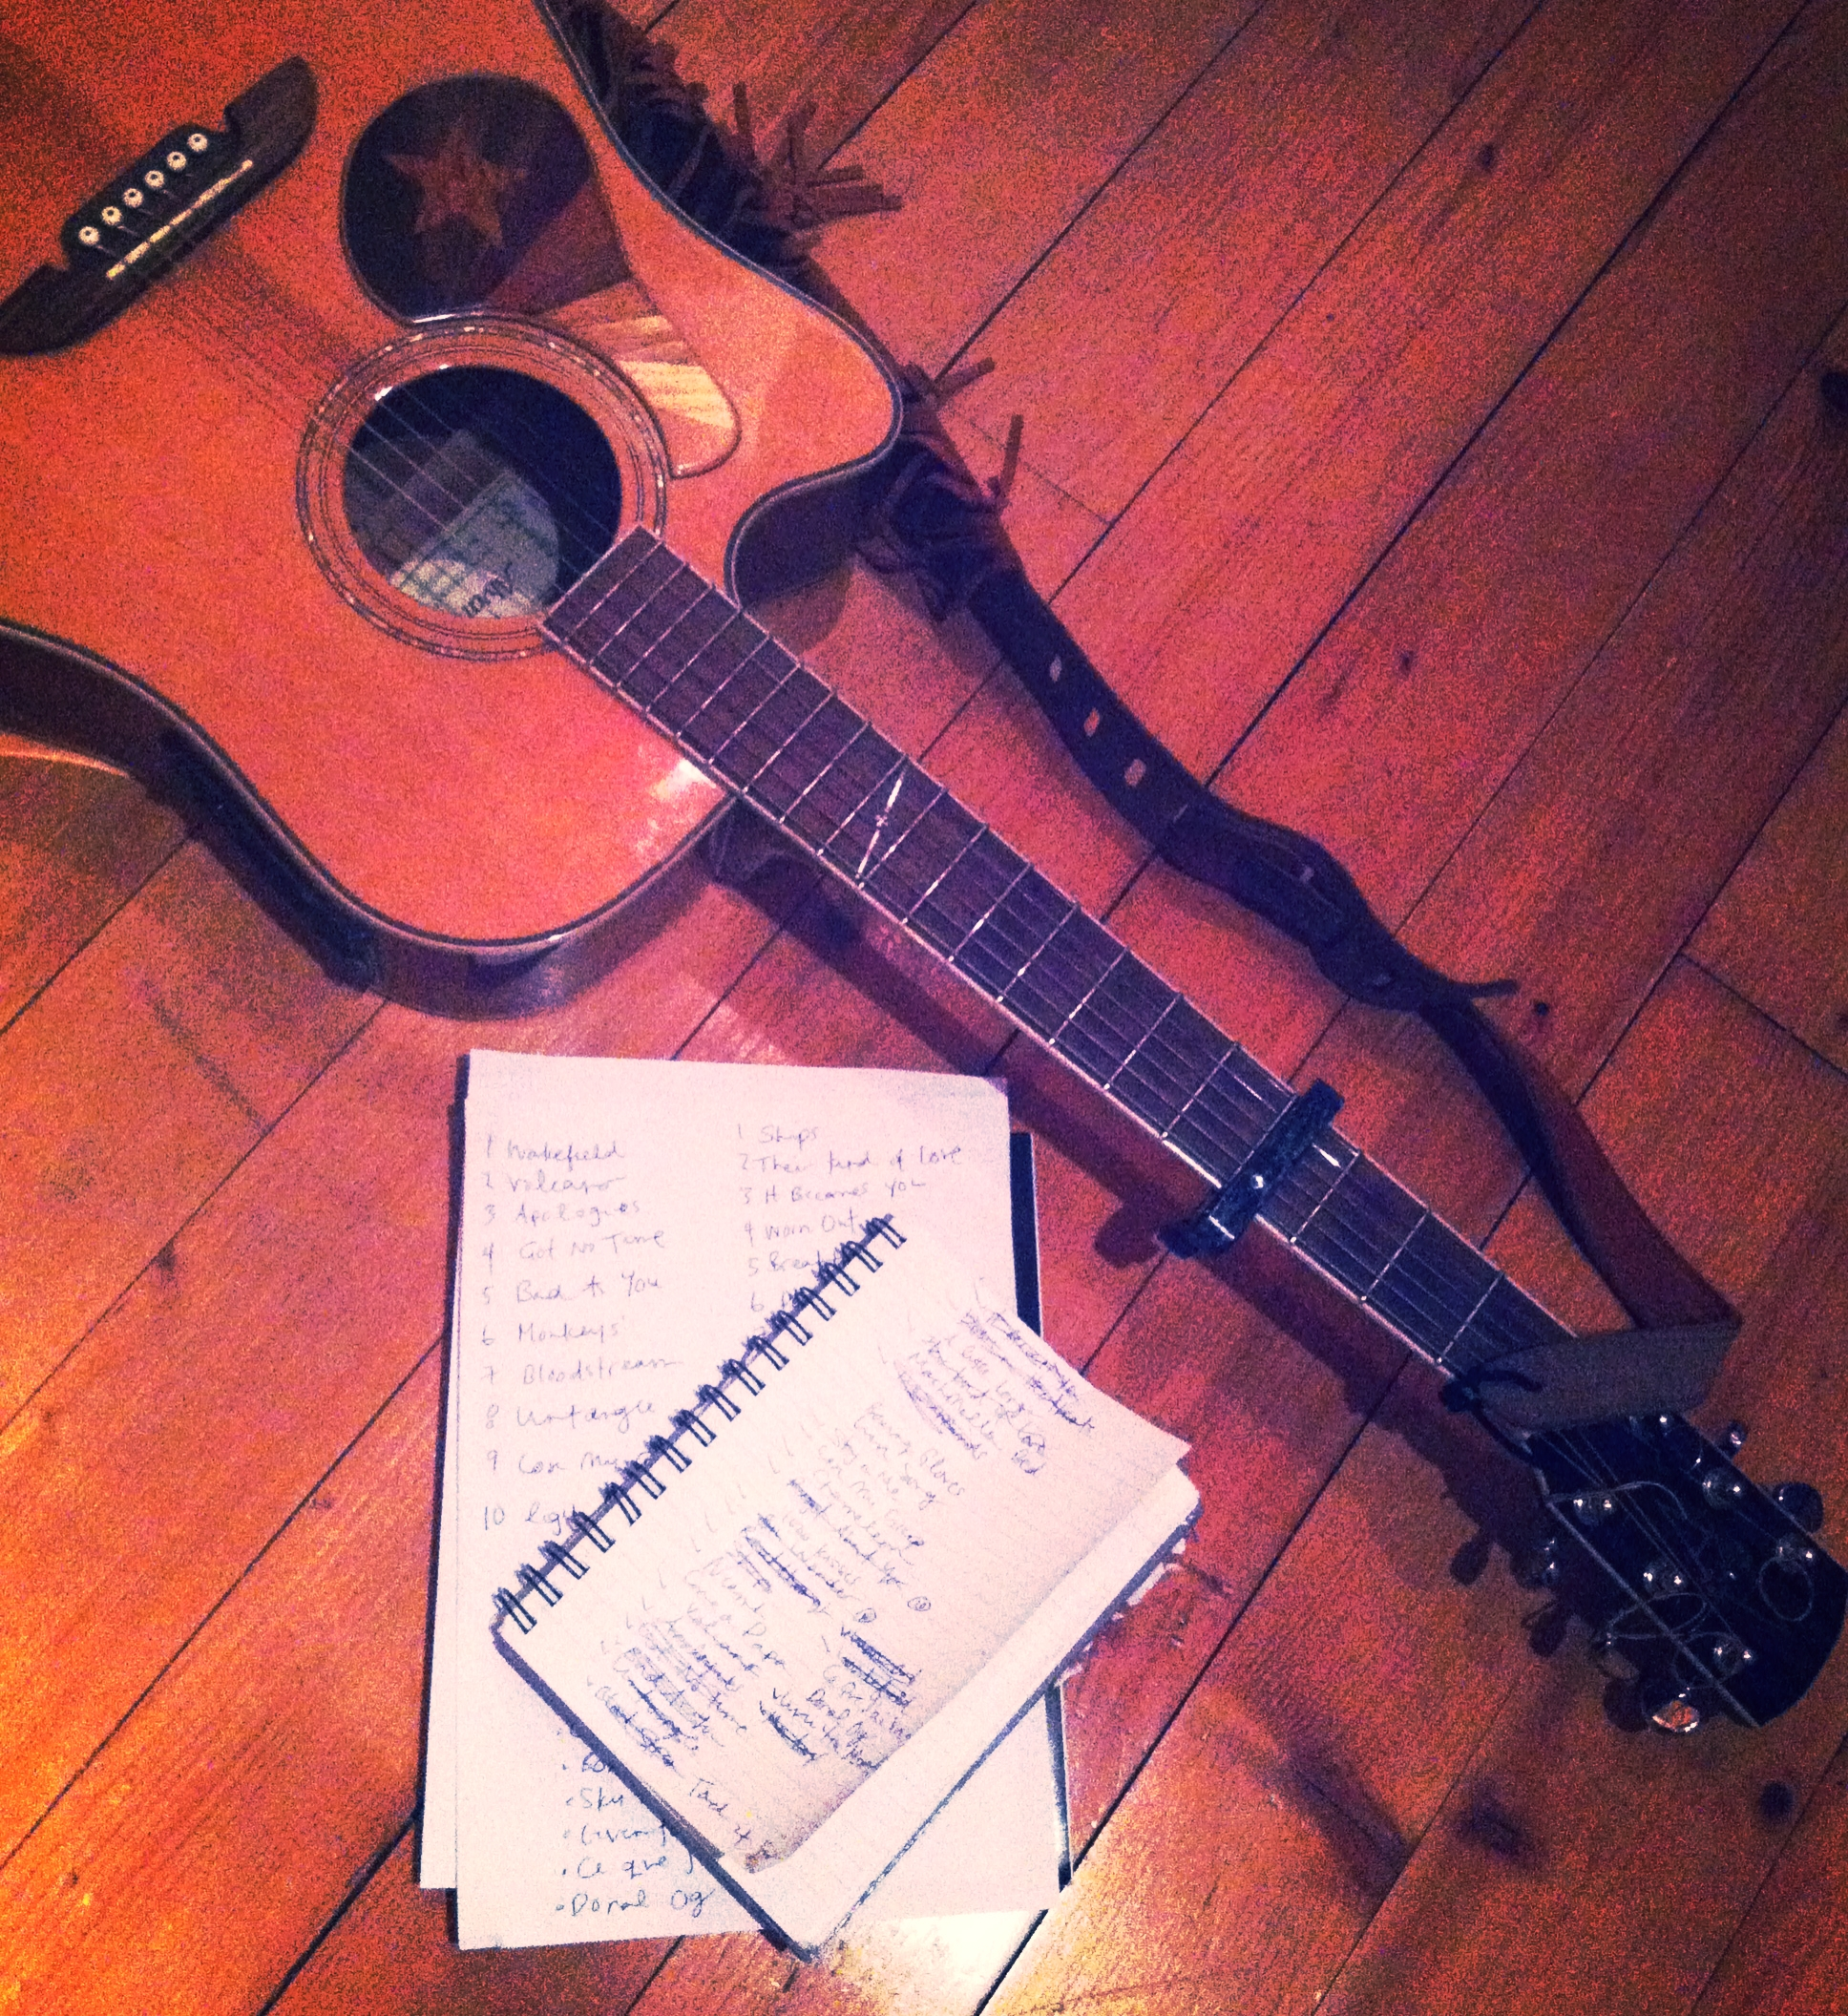 Some_notes_a_book_and_a_guitar